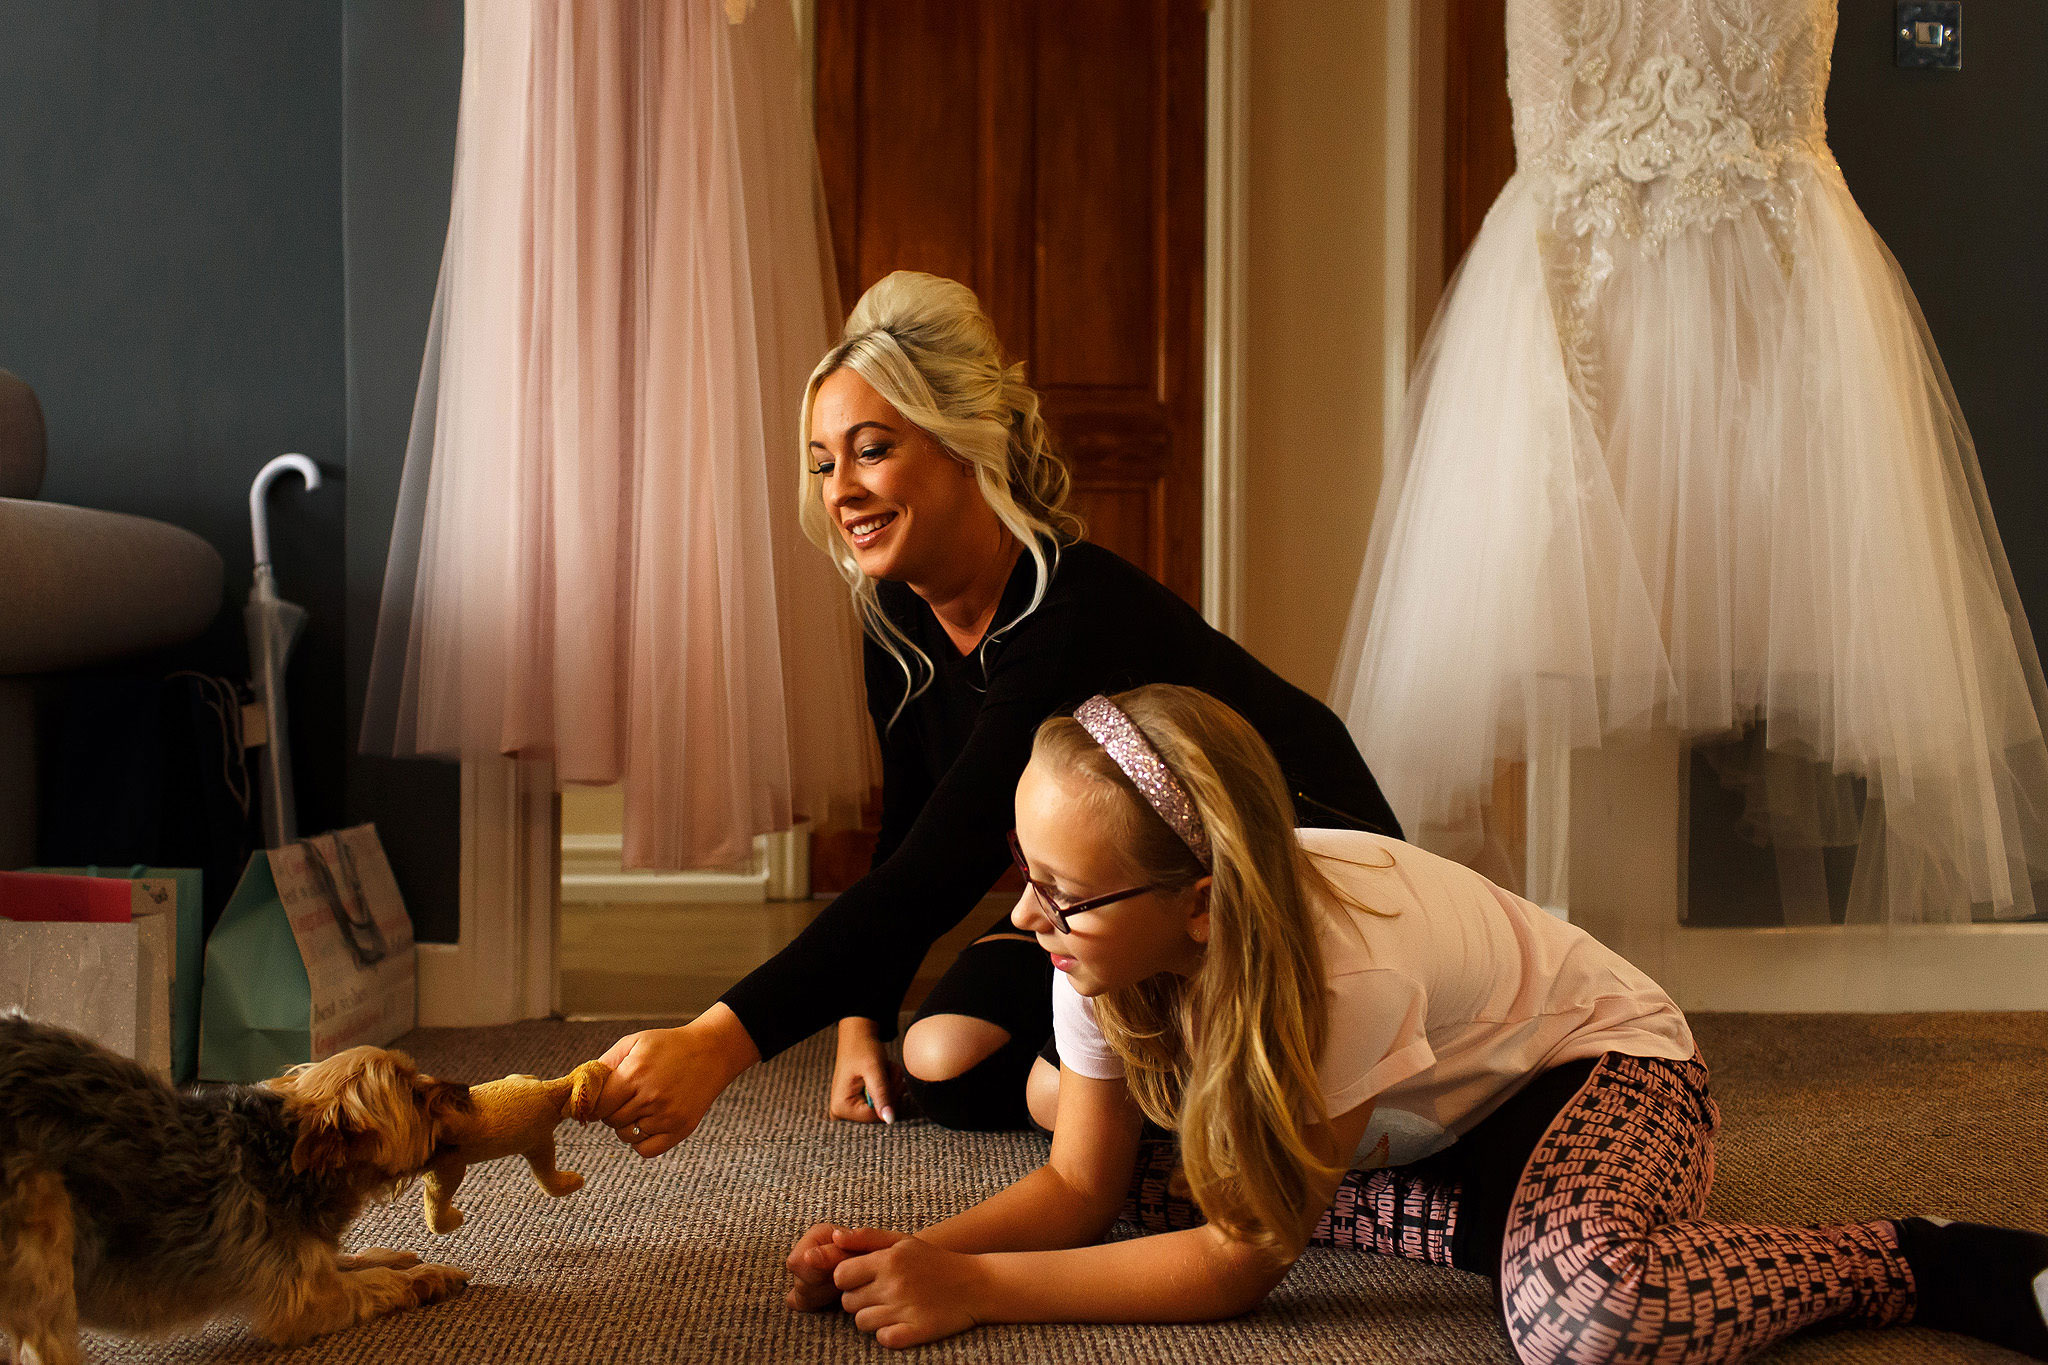 Bride playing with small brown dog with wedding dress hanging in the background